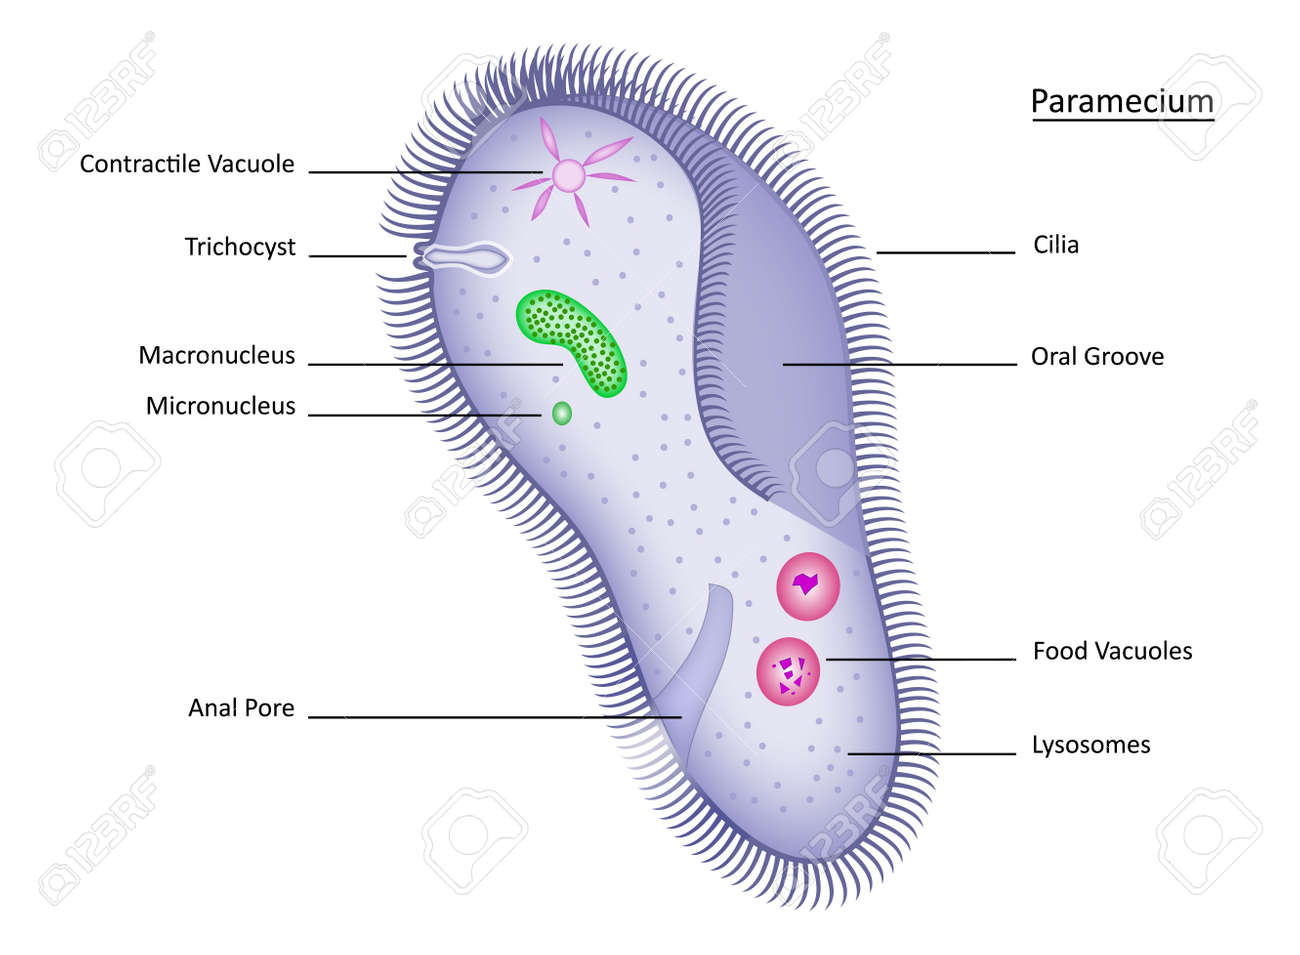 hight resolution of colorful paramecium with clearly labeled structures stock vector 11675394